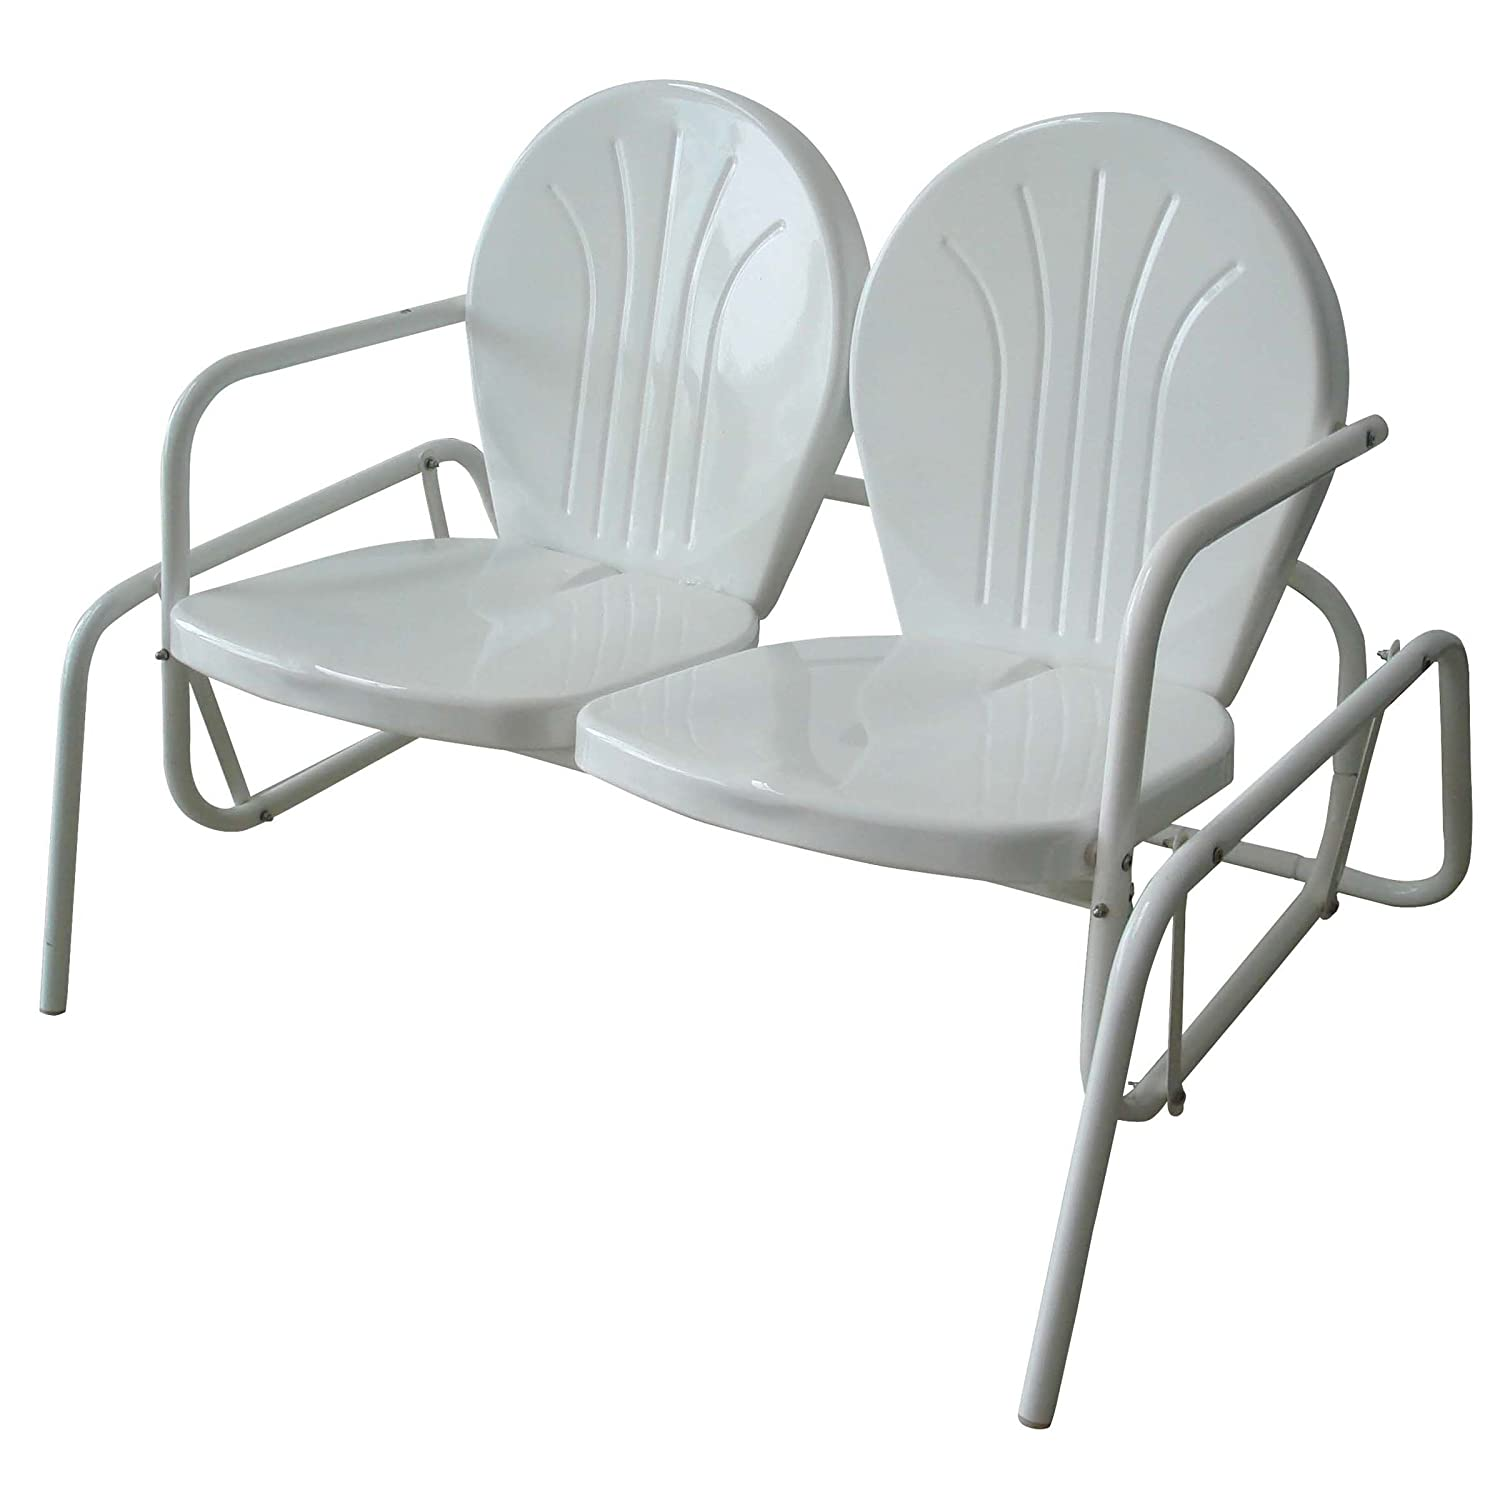 Amazon.com : AmeriHOme Double Seat Glider : Patio Gliders : Garden U0026 Outdoor